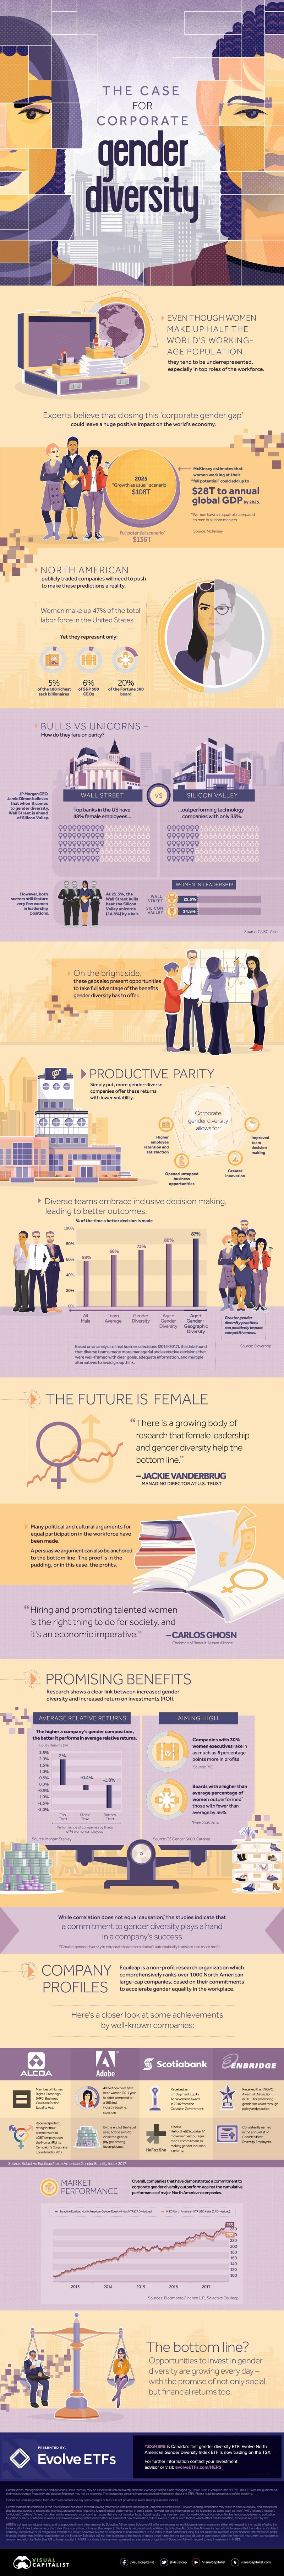 The Case for Corporate Gender Diversity